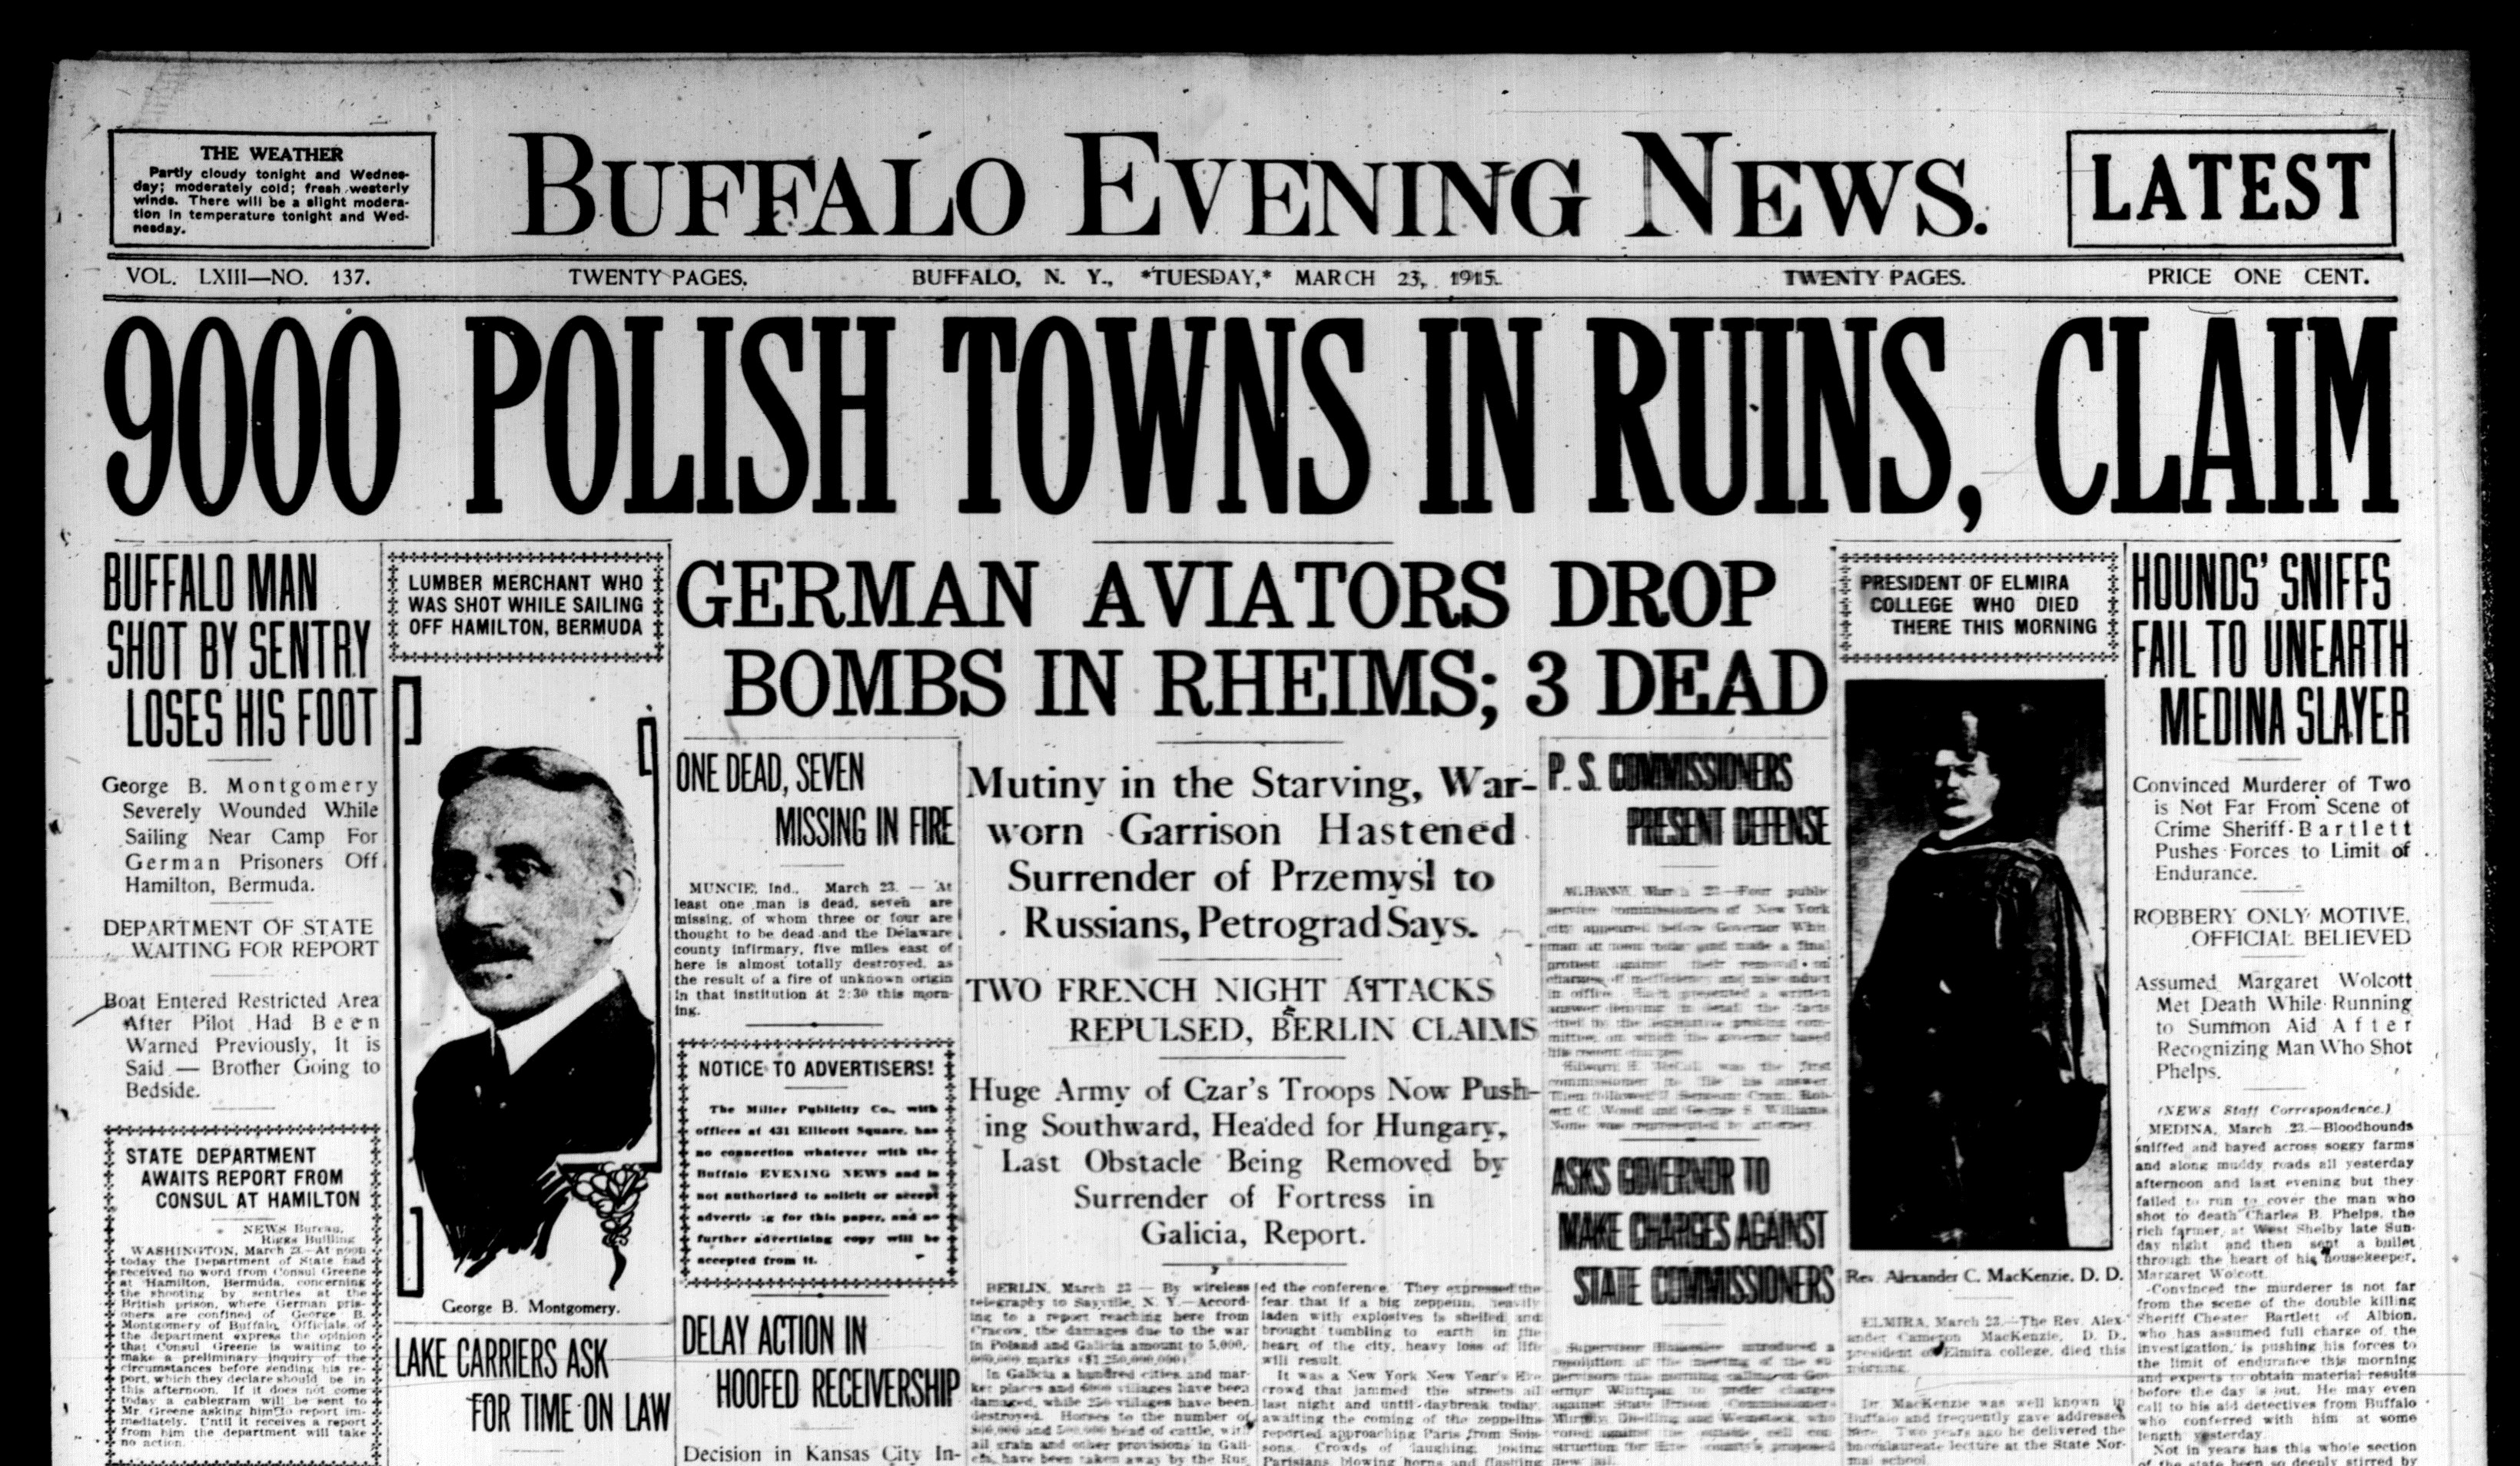 Front page March 23, 1915: Bloodhounds fail in search for Medina murderer